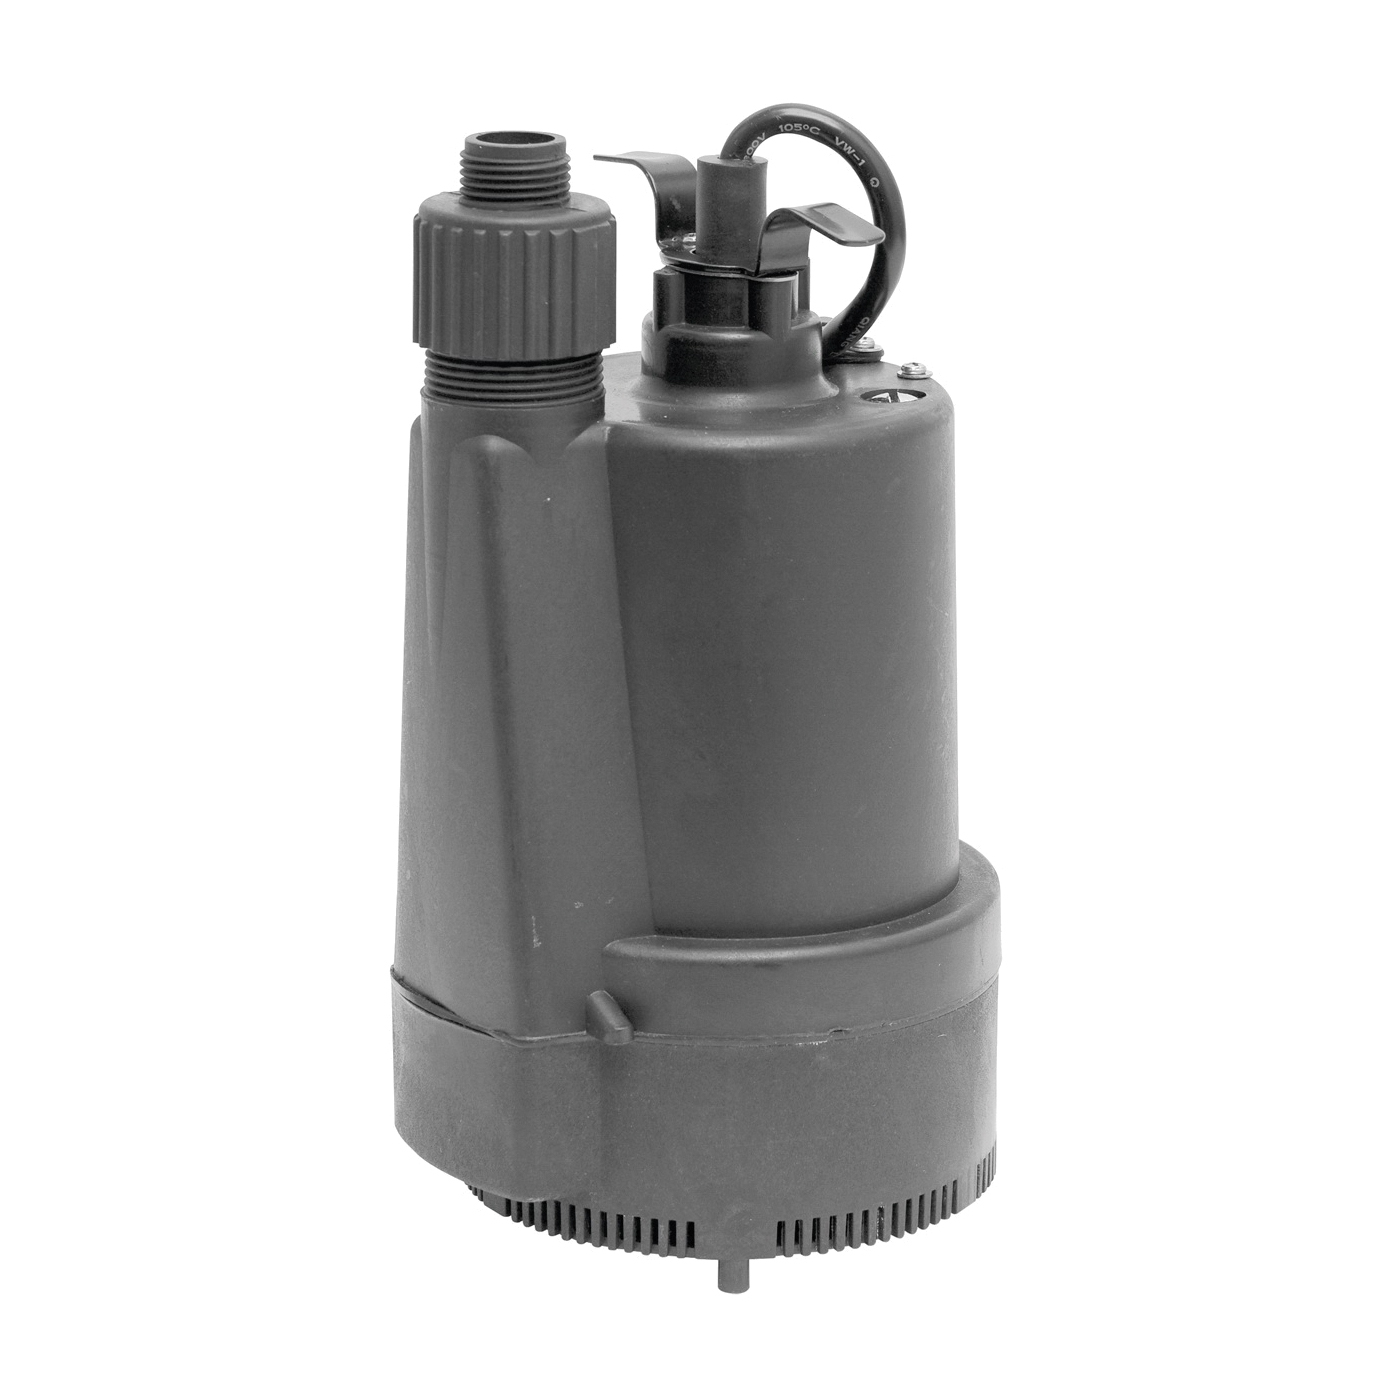 Picture of SUPERIOR PUMP 91330 Utility Pump, 4.1 A, 120 V, 0.33 hp, 1-1/4 in Outlet, 40 gpm, Thermoplastic Impeller